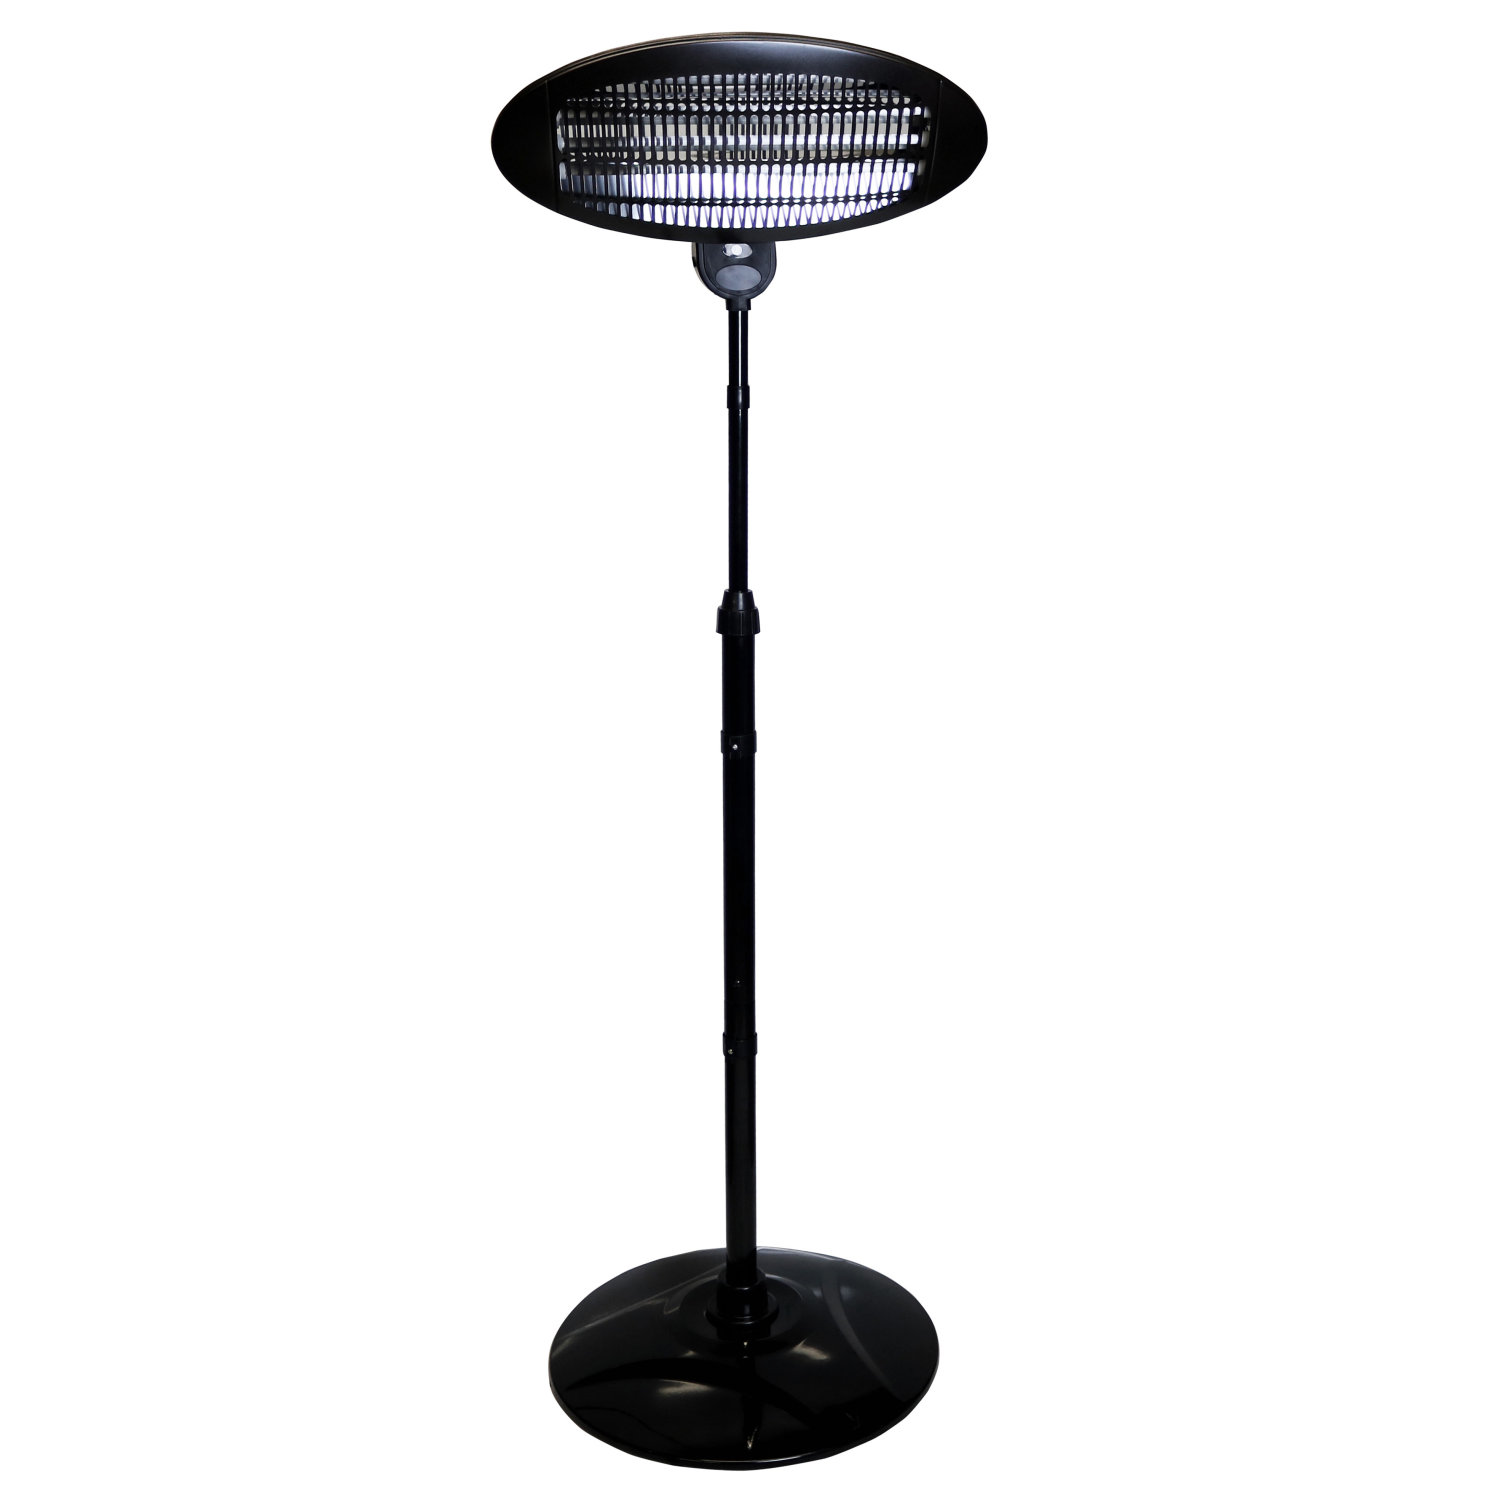 2kw quartz free standing outdoor electric garden patio for Outdoor patio heaters electric